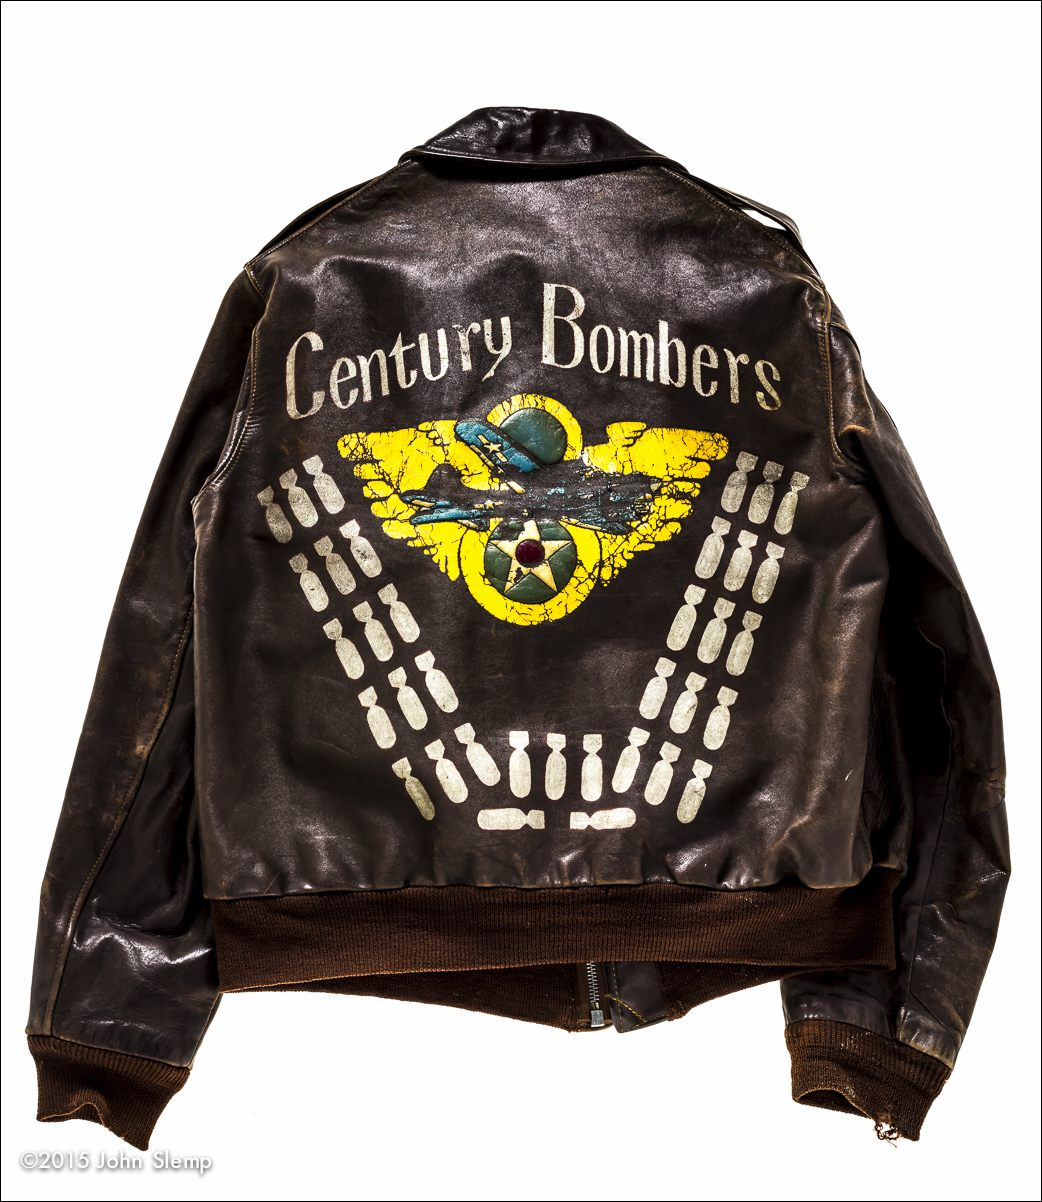 Captain Frederick G. Smith was a B-17 co-pilot who completed 35 missions from 11 August, 1944 to 21 January, 1945 thereby completing his combat tour.  He passed away on 23 June, 2011.  His jacket was loaned courtesy of his son, Rick.